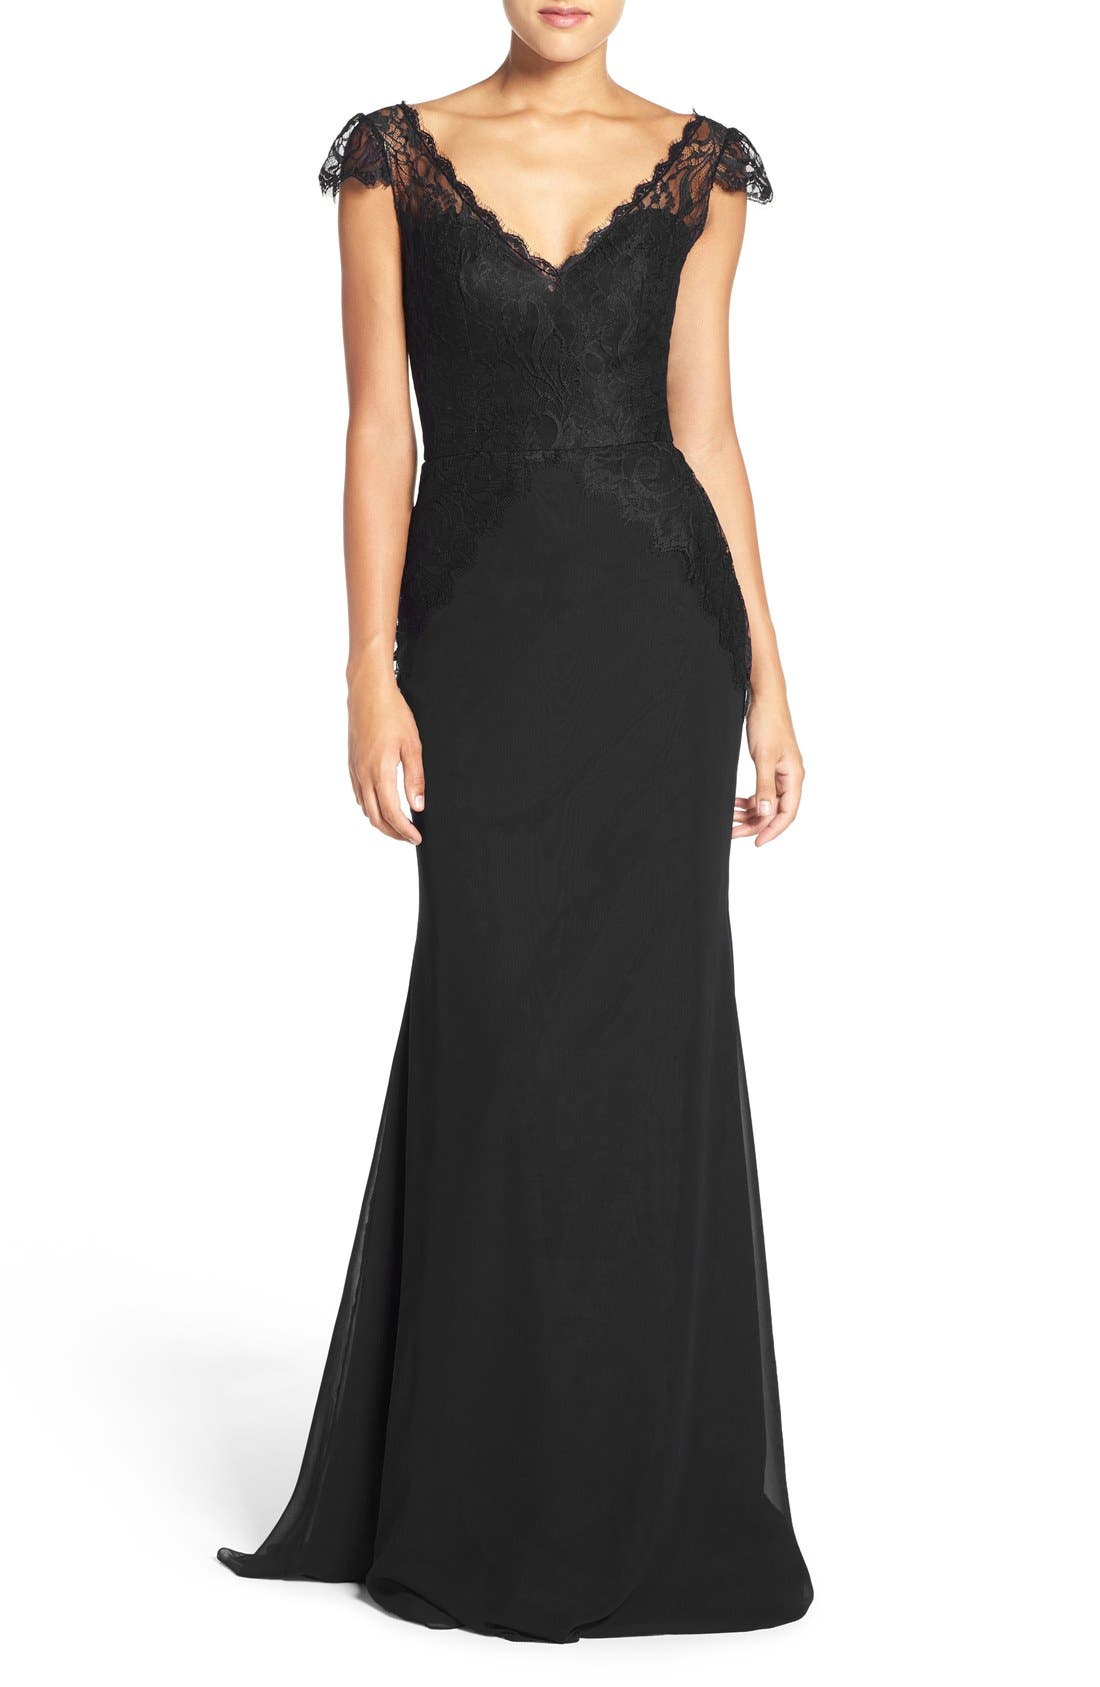 Alternate Image 1 Selected - Hayley Paige Occasions Cap Sleeve Lace & Chiffon Trumpet Gown